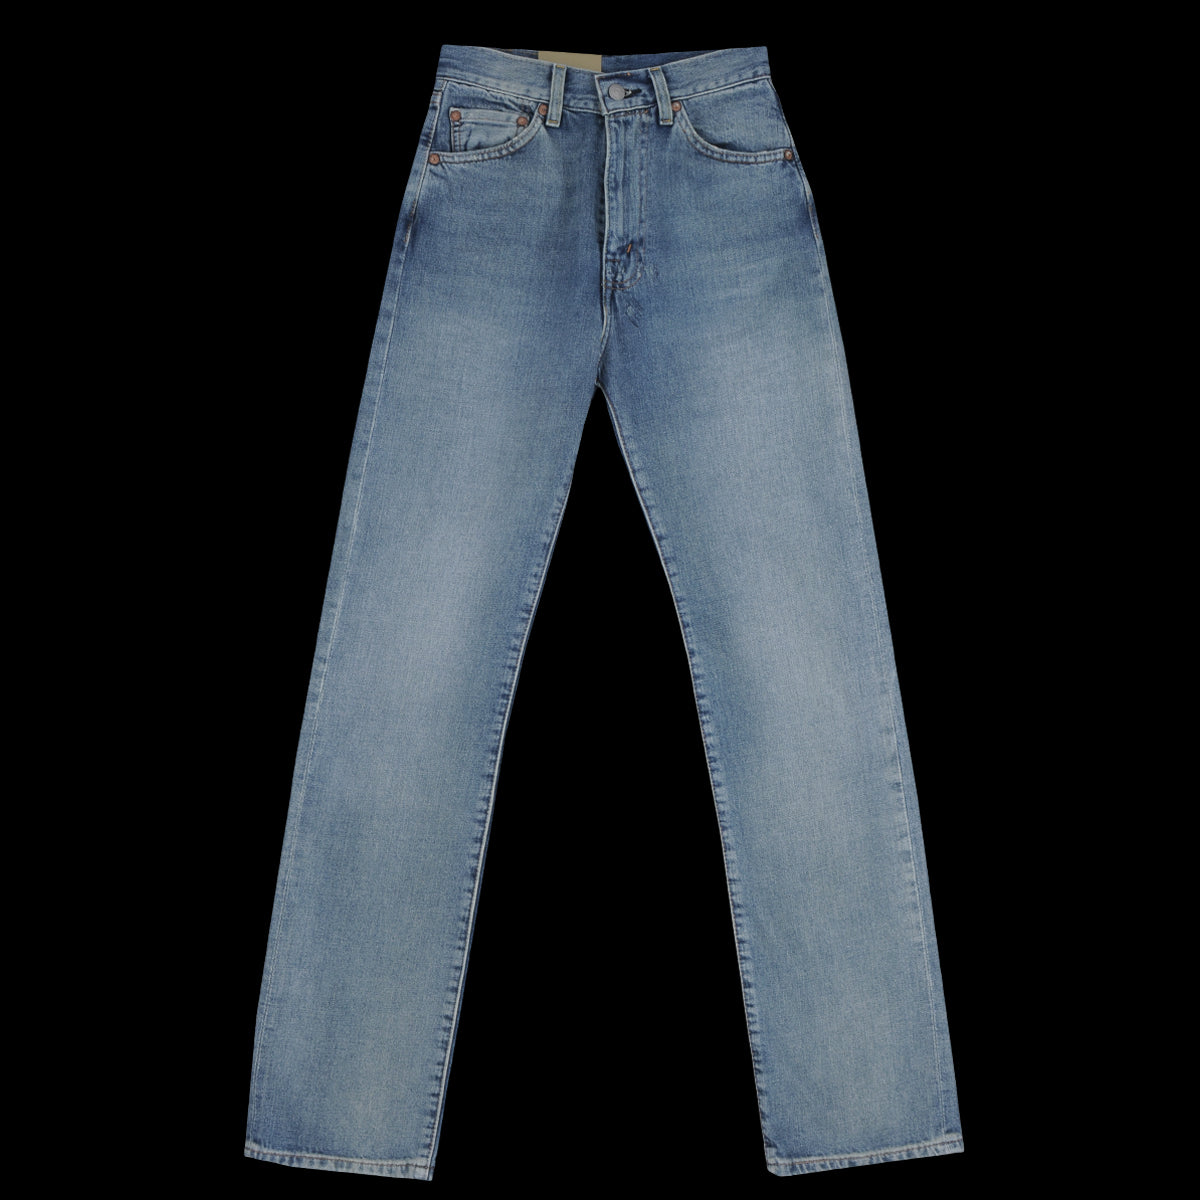 40540cba Levi's Vintage Clothing - 1950's 701 Jean in Del Mar - UNIONMADE